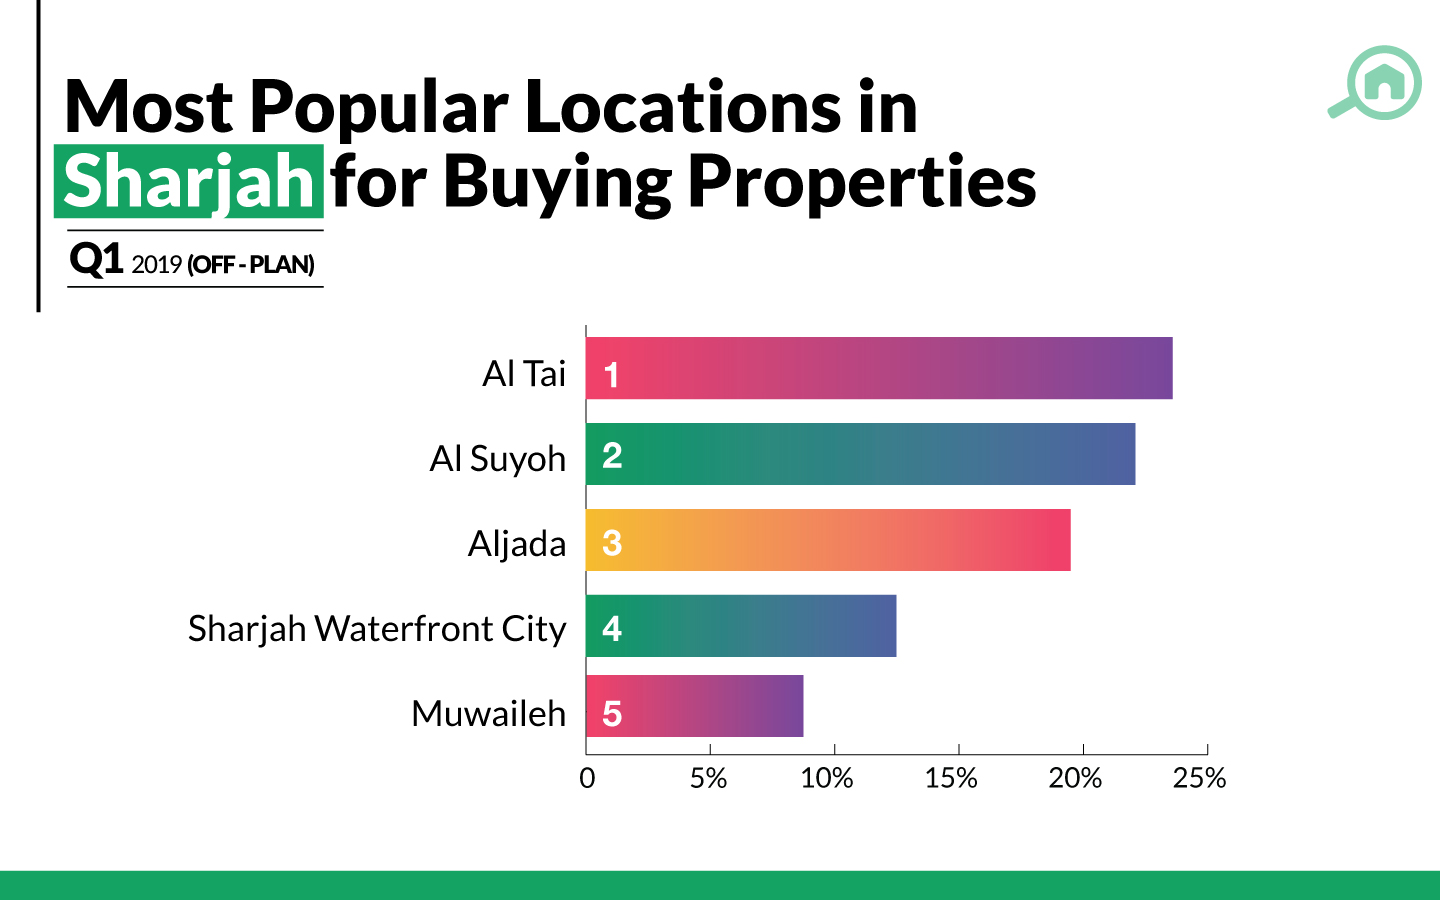 Top areas from Sharjah property market with off-plan properties